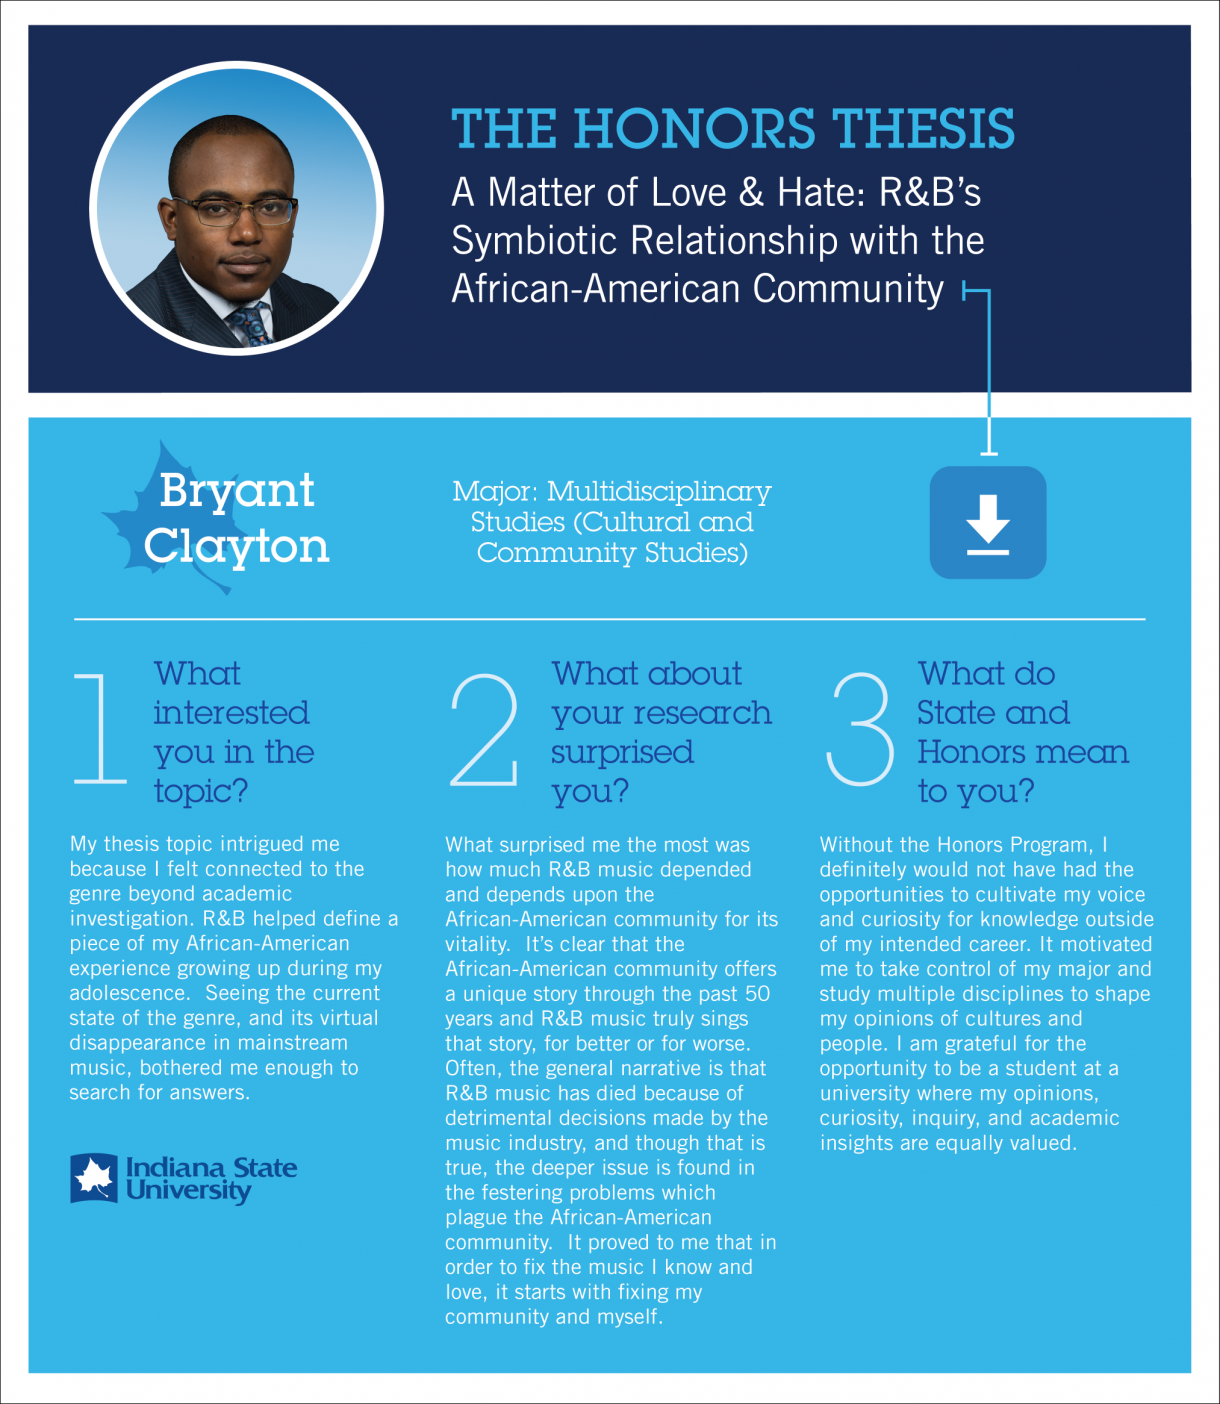 honor thesis Honors programs honors programs are organized by departments and programs they allow students to engage in advanced, independent research, analysis and articulation with faculty guidance, usually in the senior year.